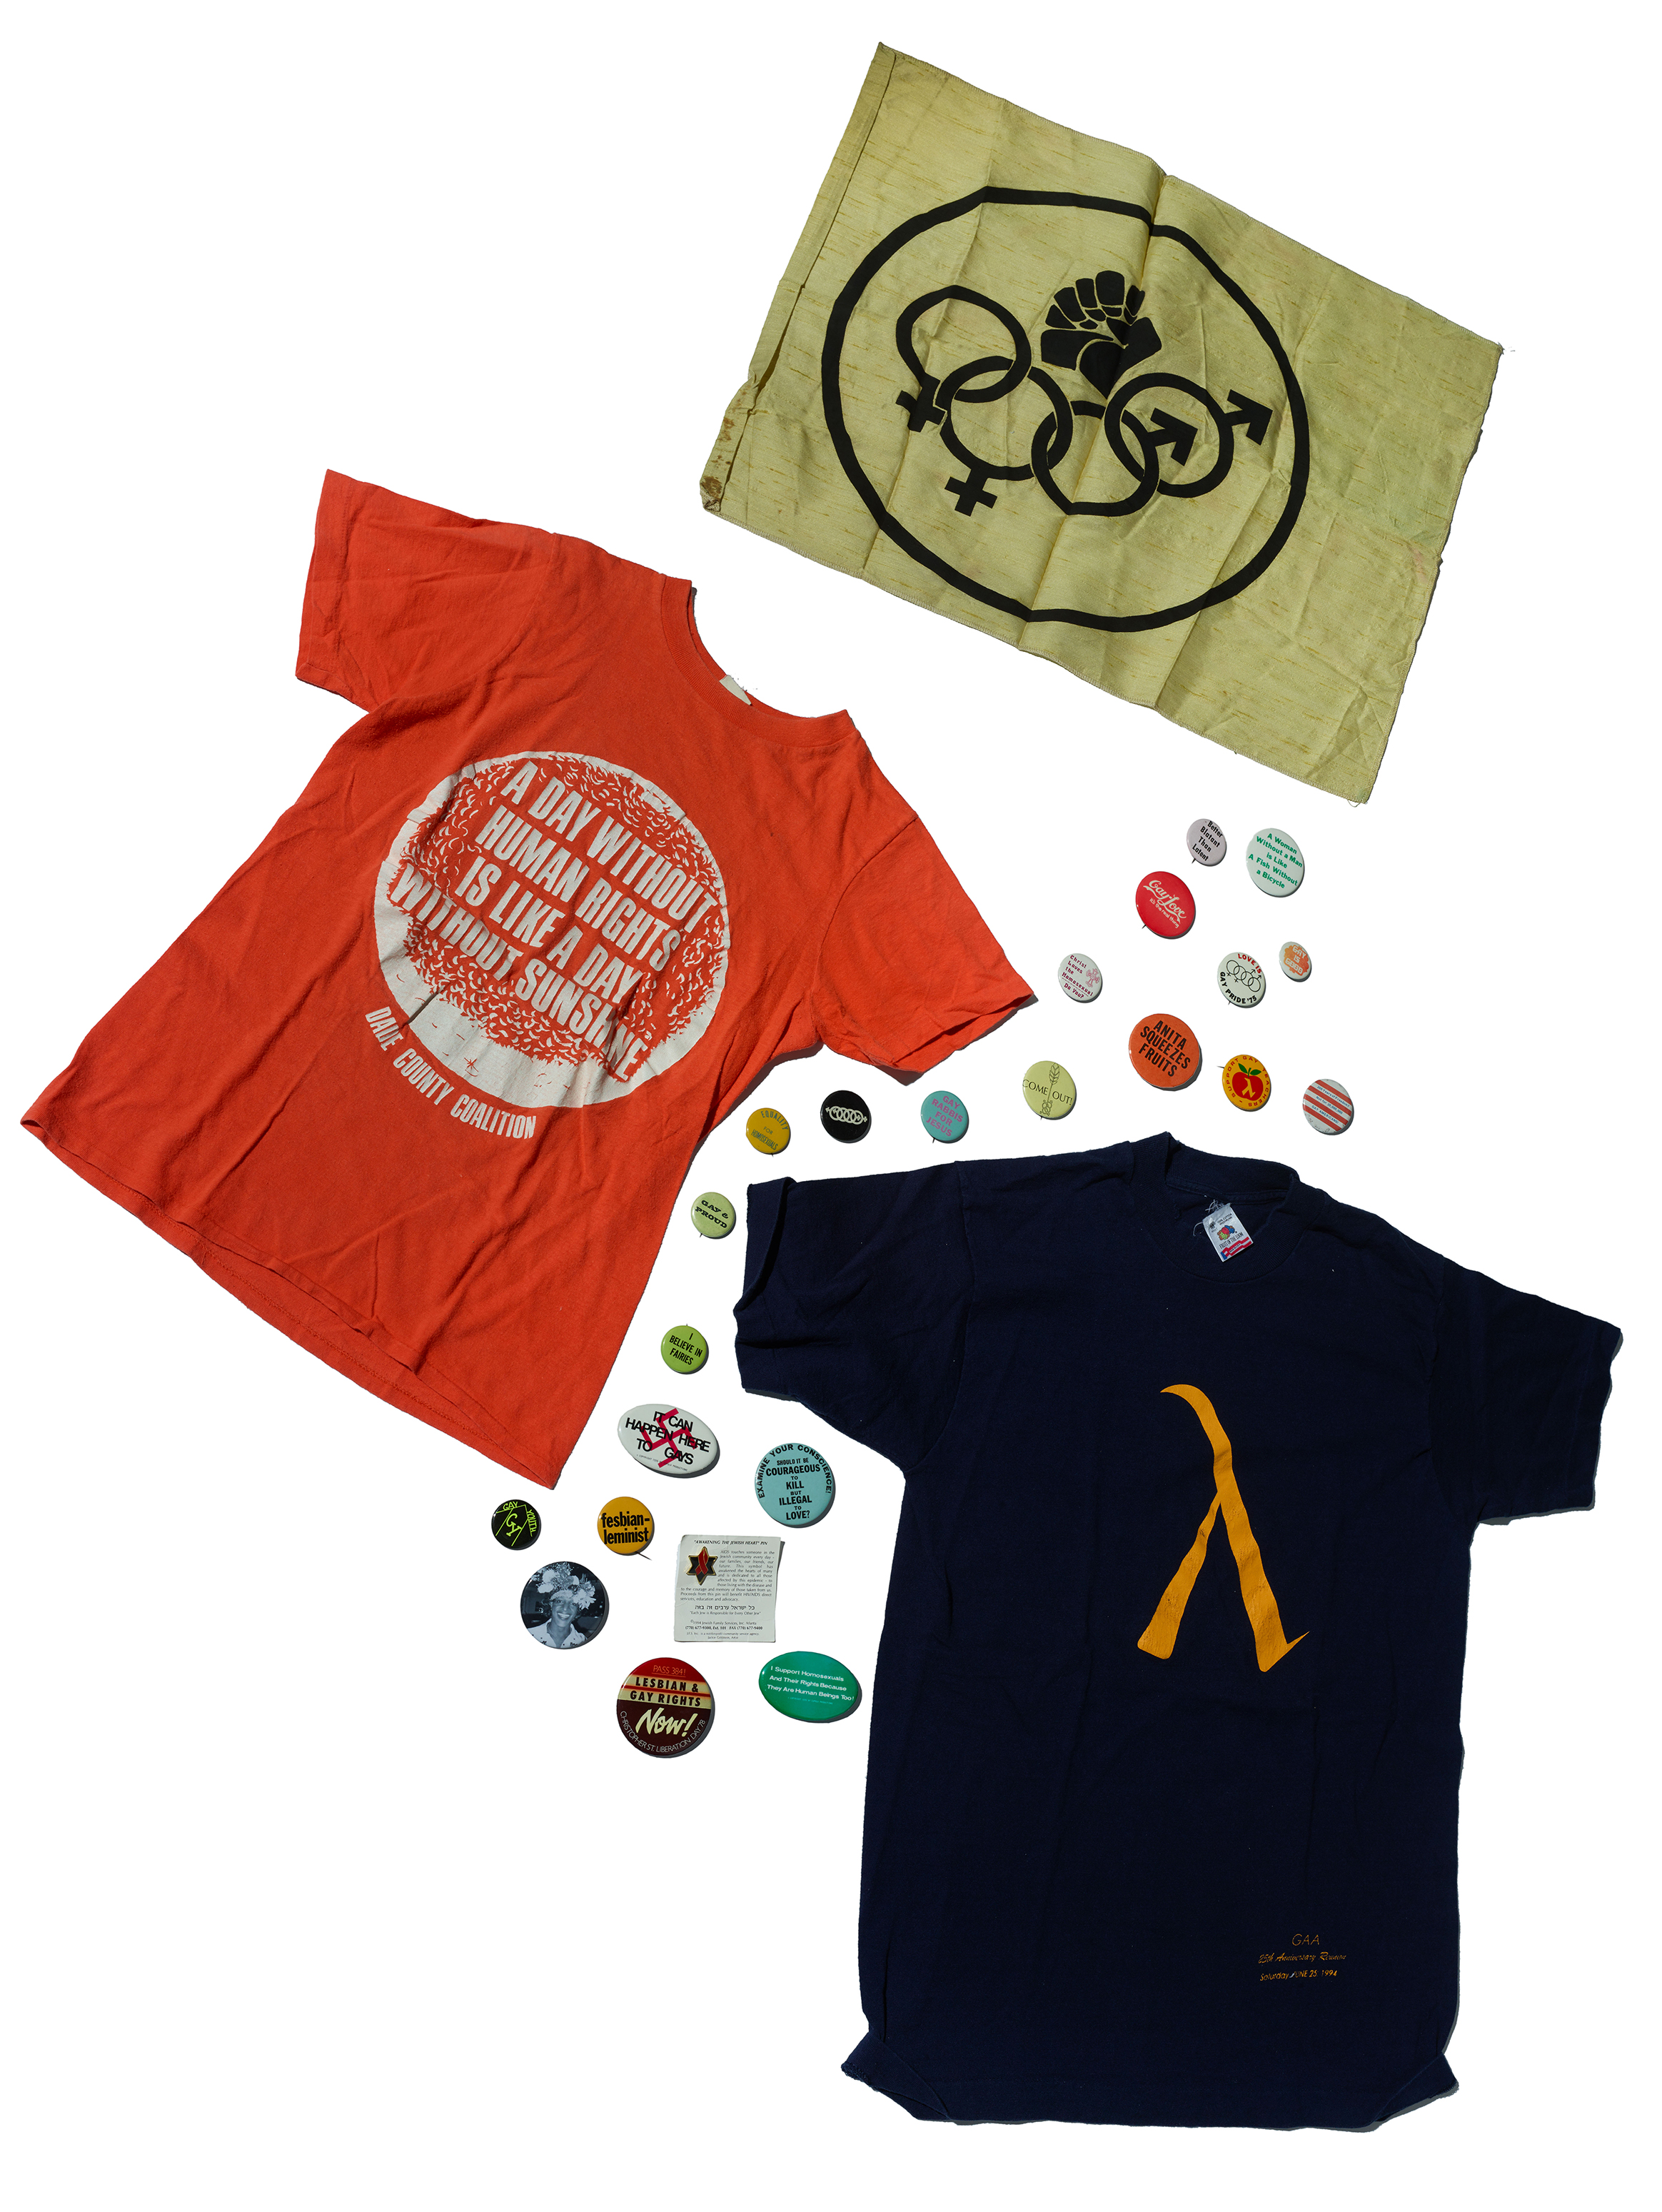 T shirts, buttons and other items are laid out over a white background